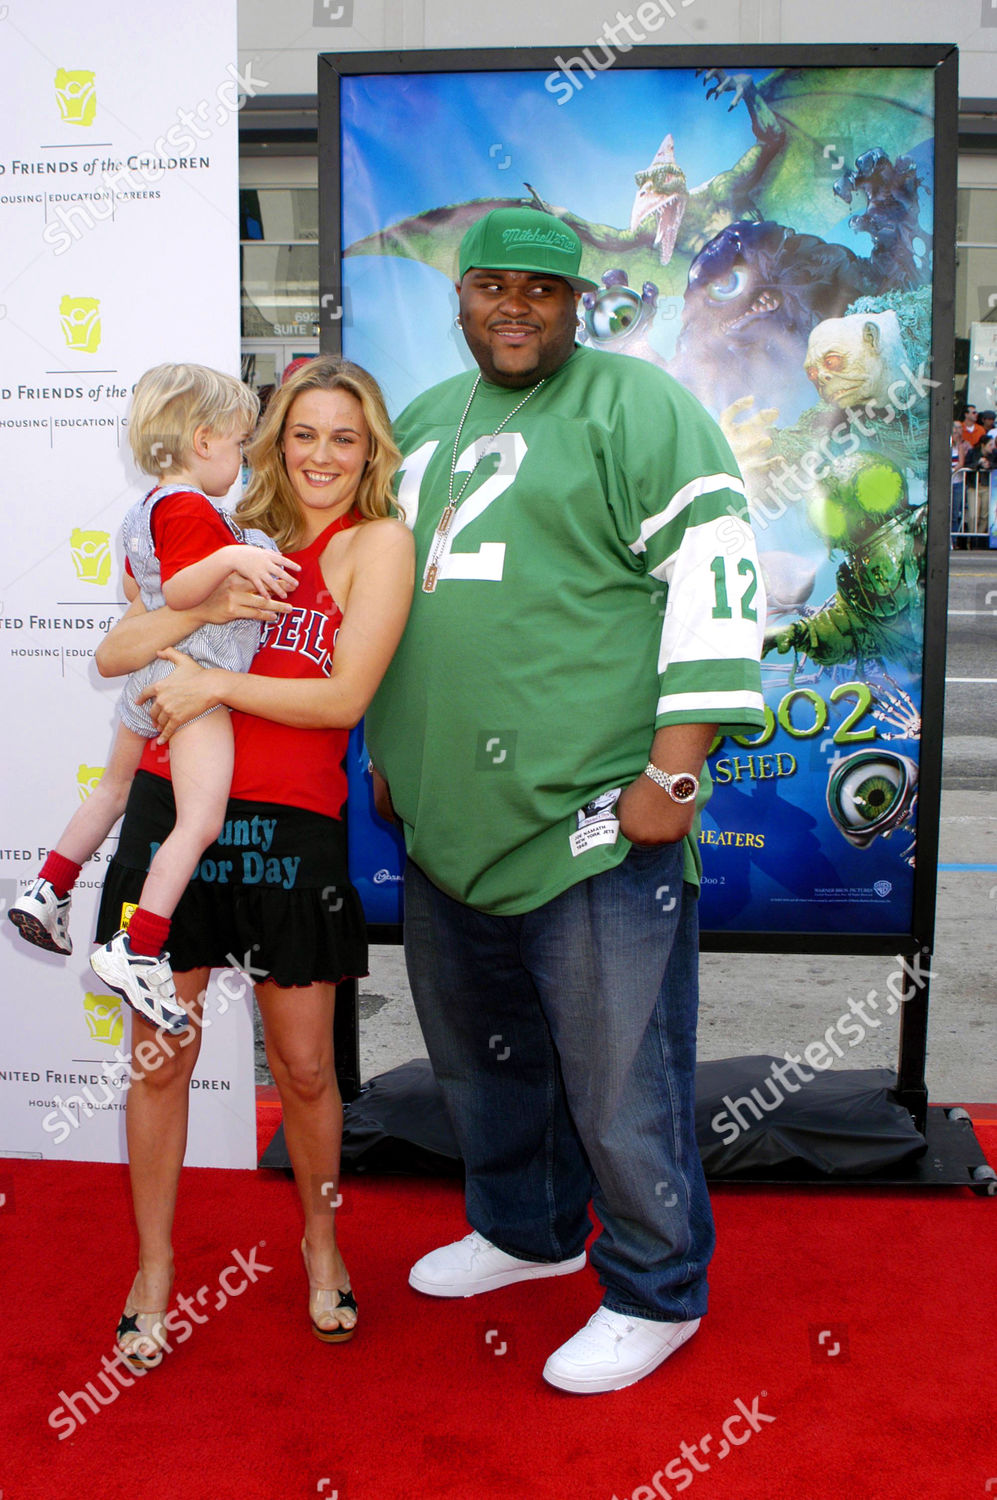 Alicia Silverstone Friend Jake Ruben Studdard Editorial Stock Photo Stock Image Shutterstock